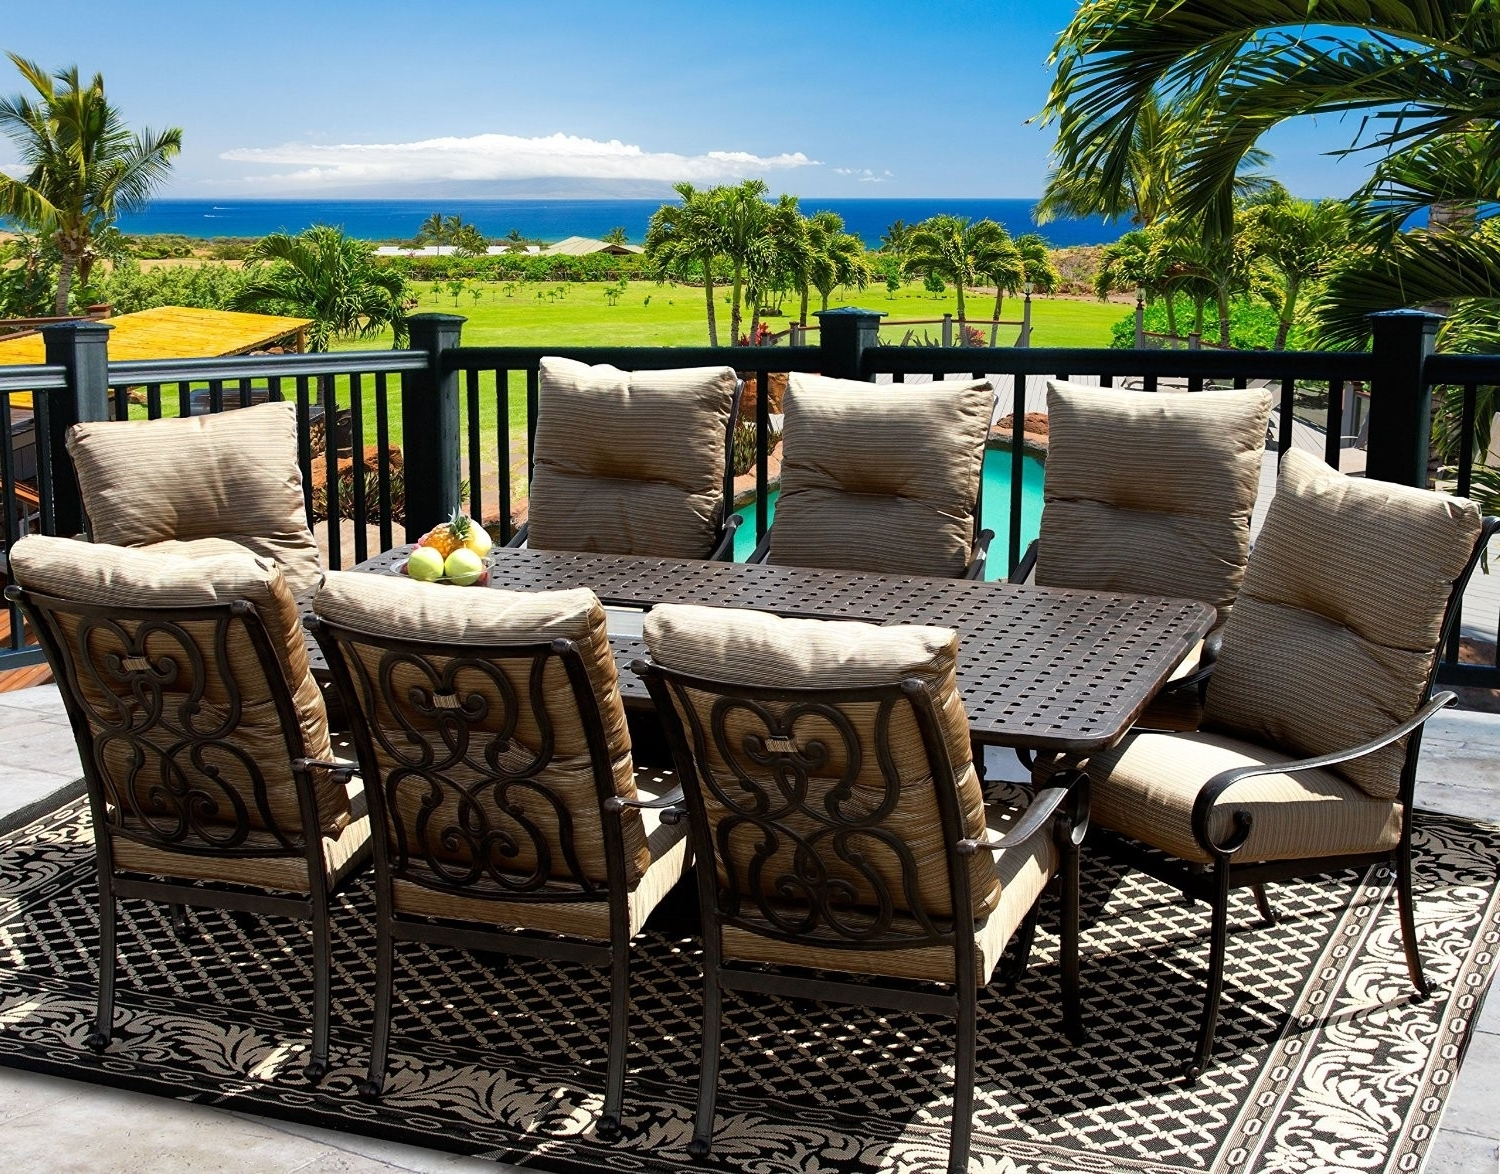 Famous Outdoor Tortuga Dining Tables With Tortuga 42X84 Rectangle Outdoor Patio 9Pc Dining Set For 8 Person (View 3 of 25)